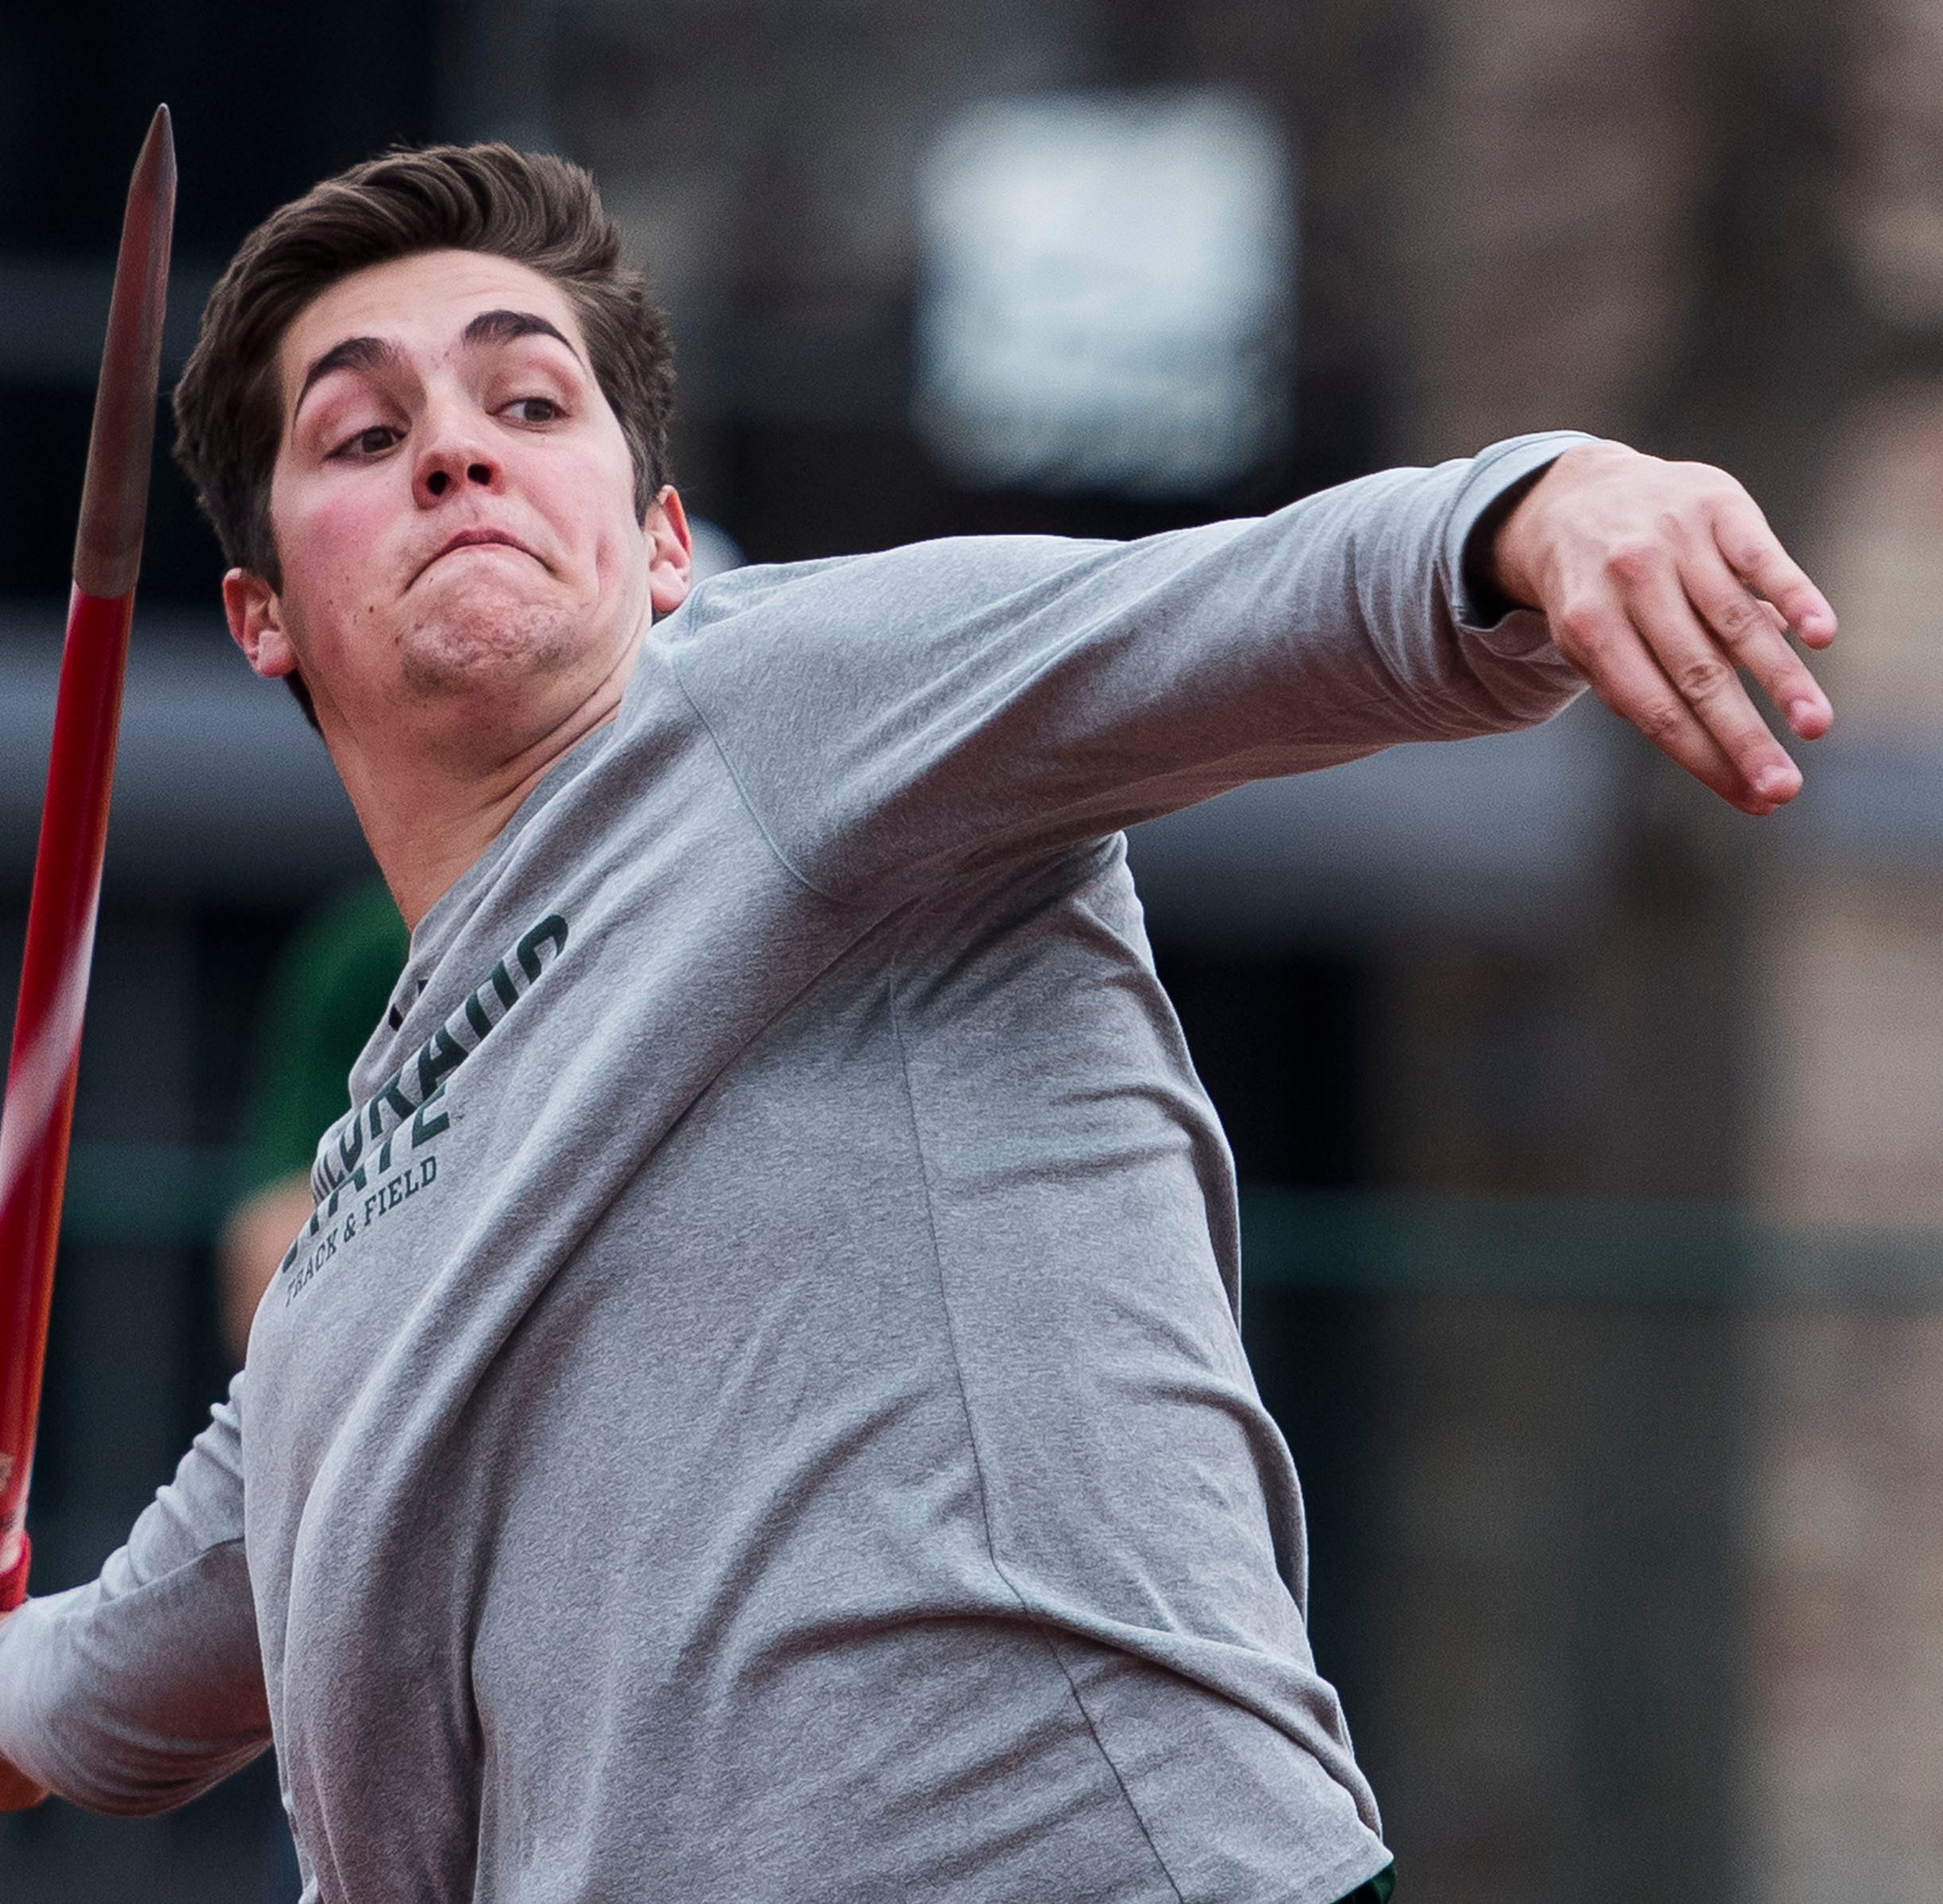 CSU throwers thrive in first meet at renovated track facility